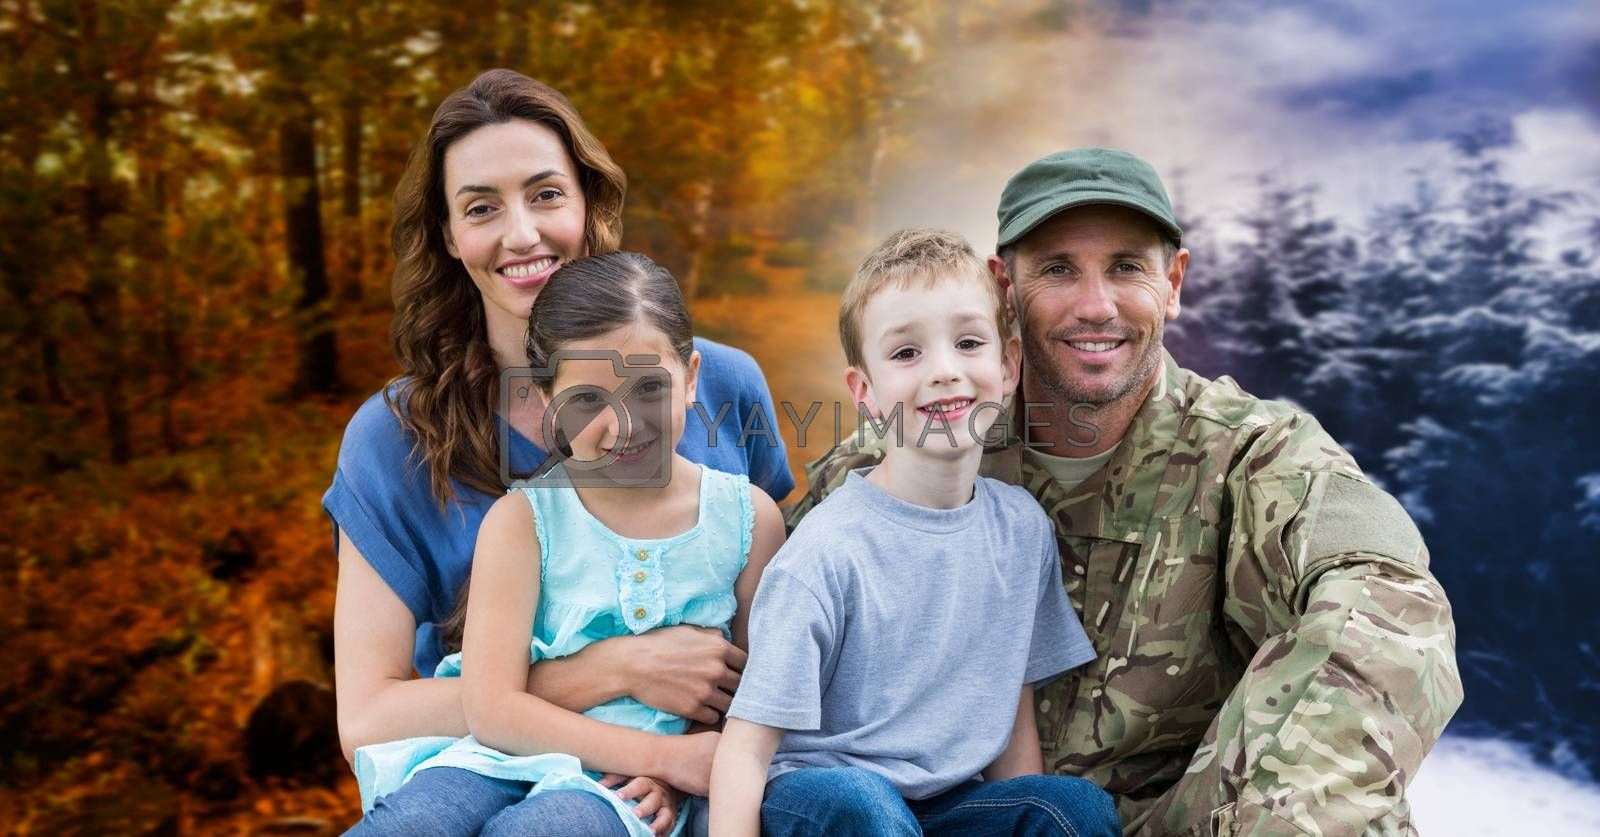 Digital composite of Autumn and Winter seasonal weather transition landscape and soldier with family